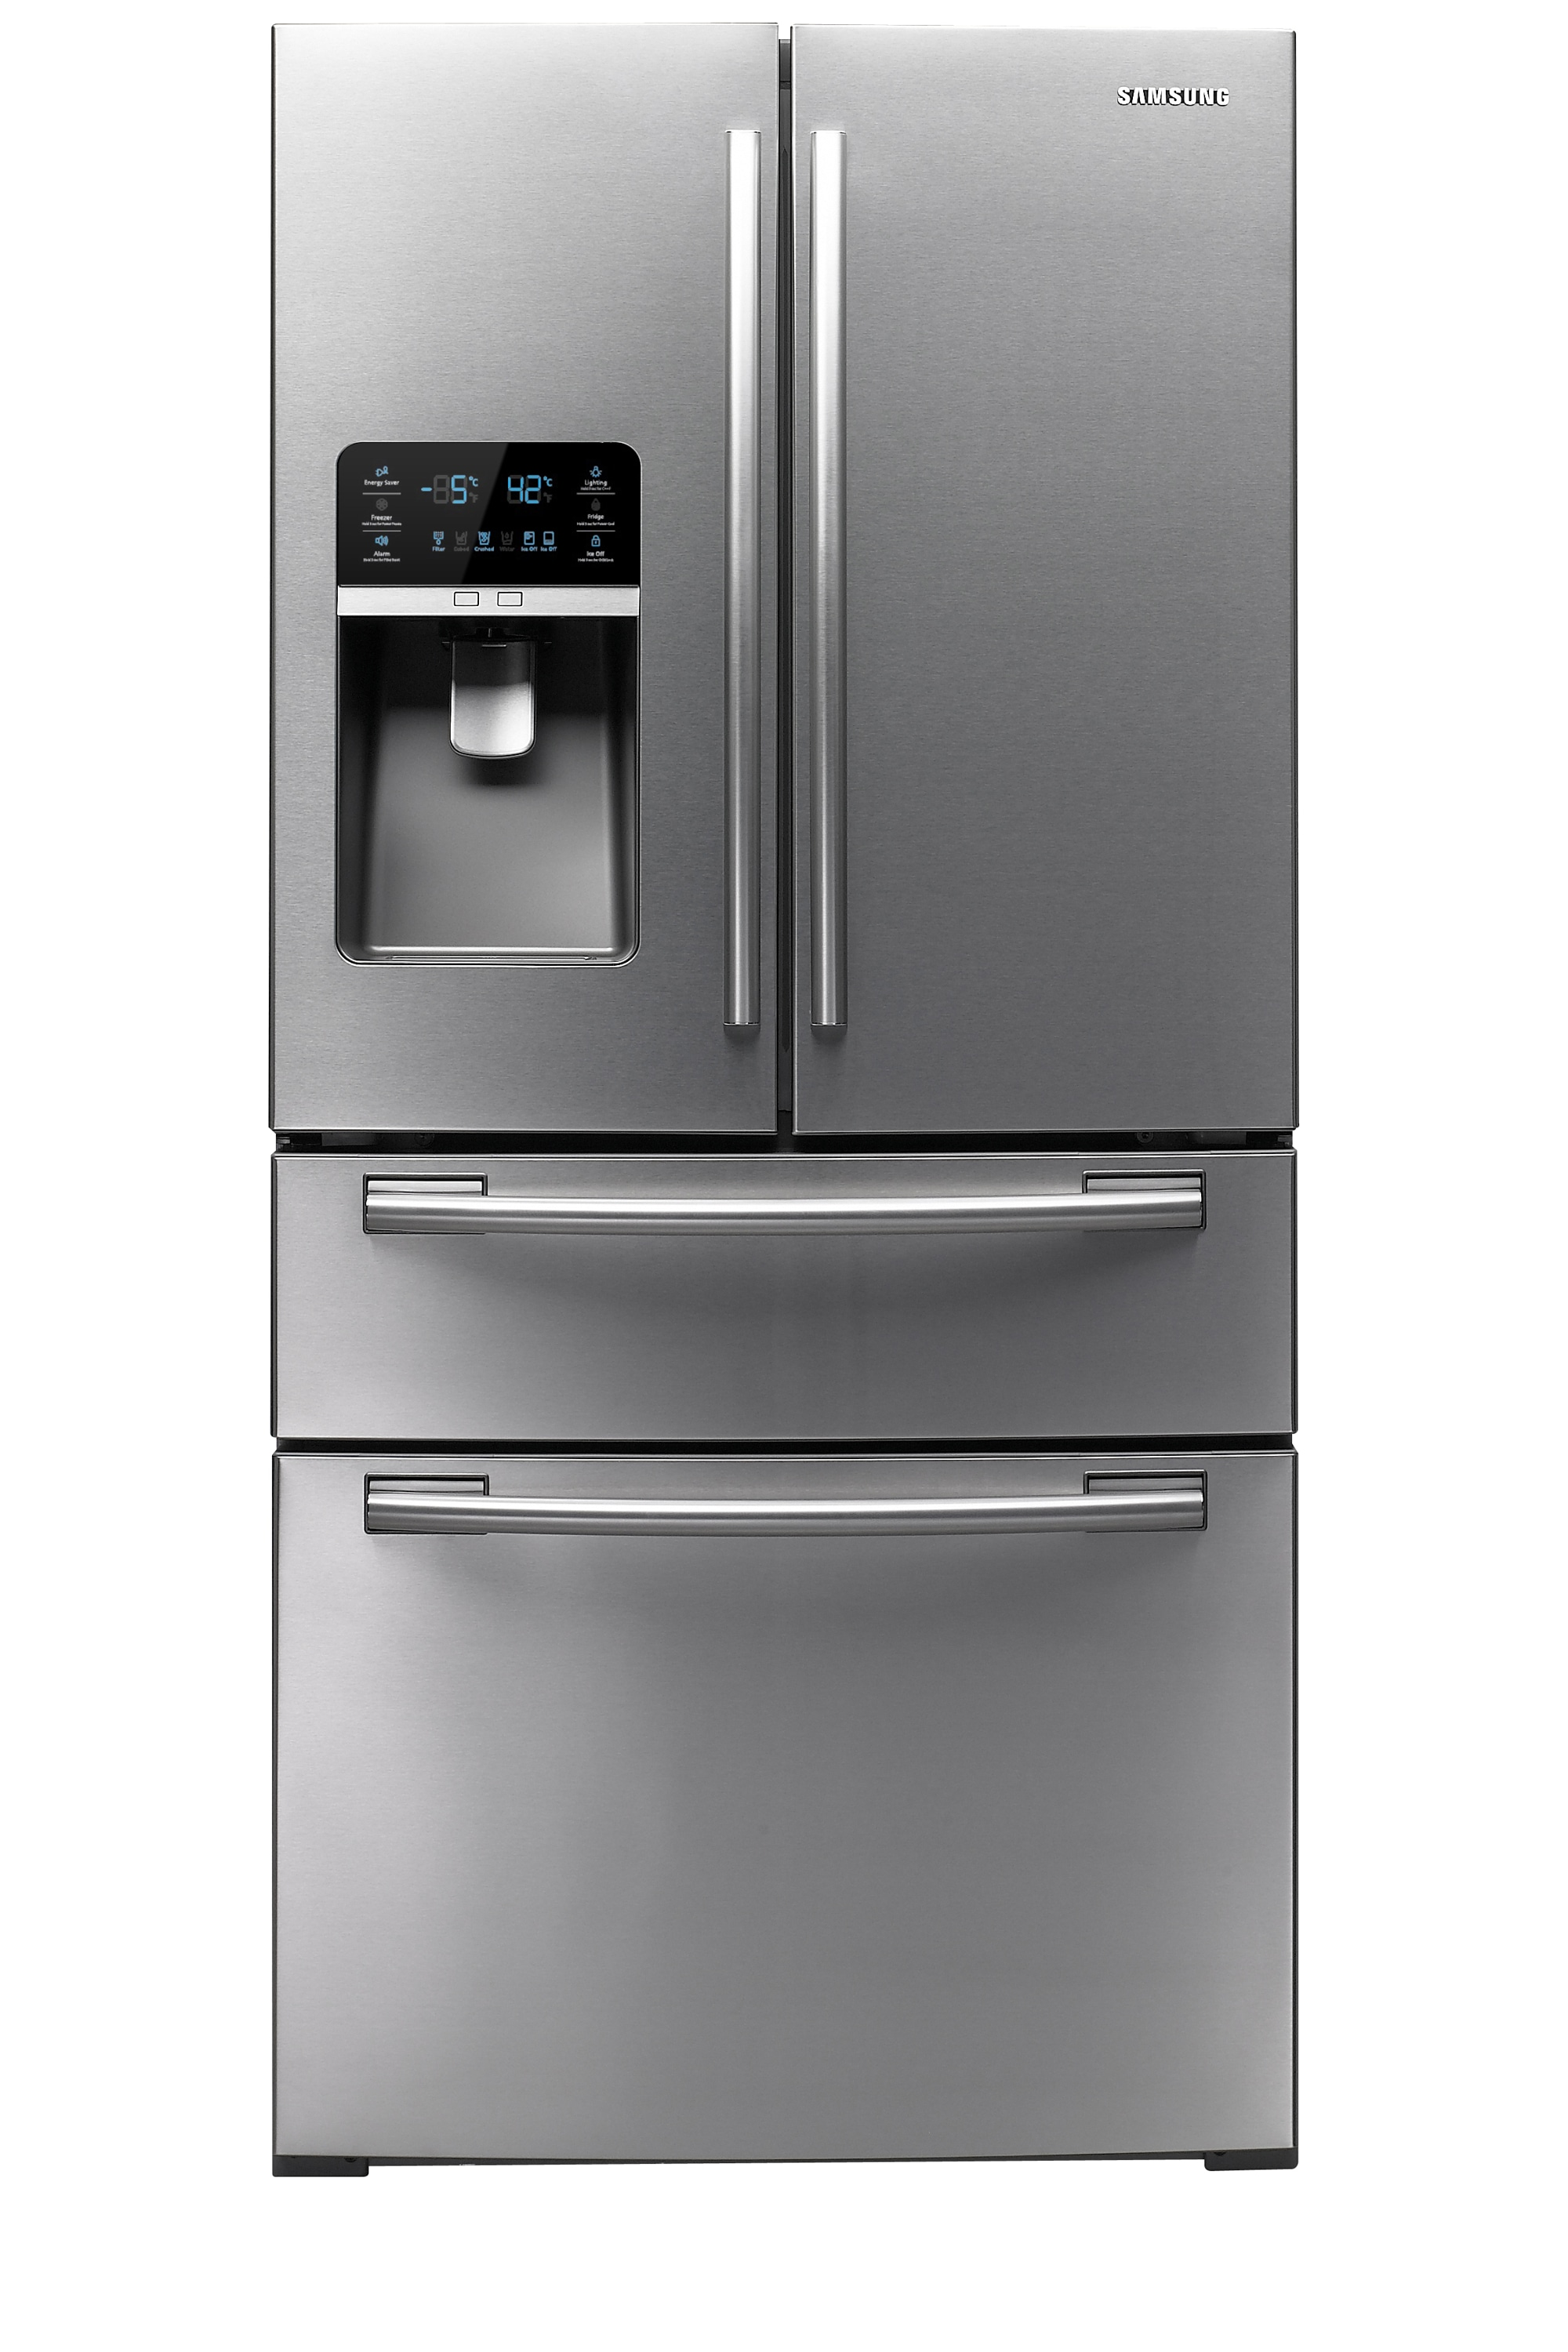 OPUS1-4D 25.5 cu.ft 4-Door French Door Refrigerator (Stainless Steel)